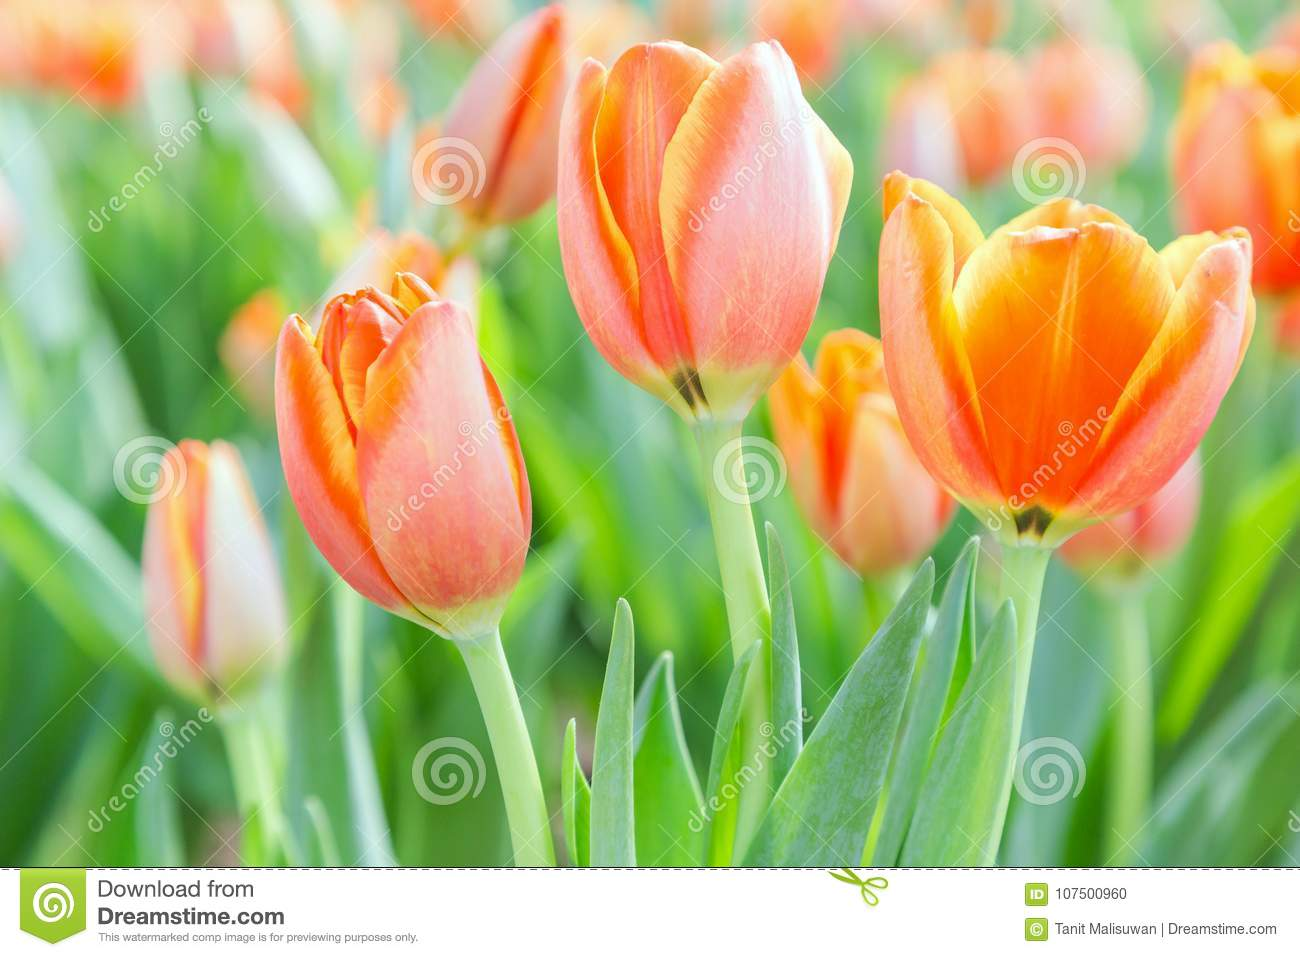 Beautiful tulip flower and green leaf background in tulip garden at beautiful tulip flower green leaf background tulip garden winter spring day beautiful tulip flower green leaf 107500960g izmirmasajfo